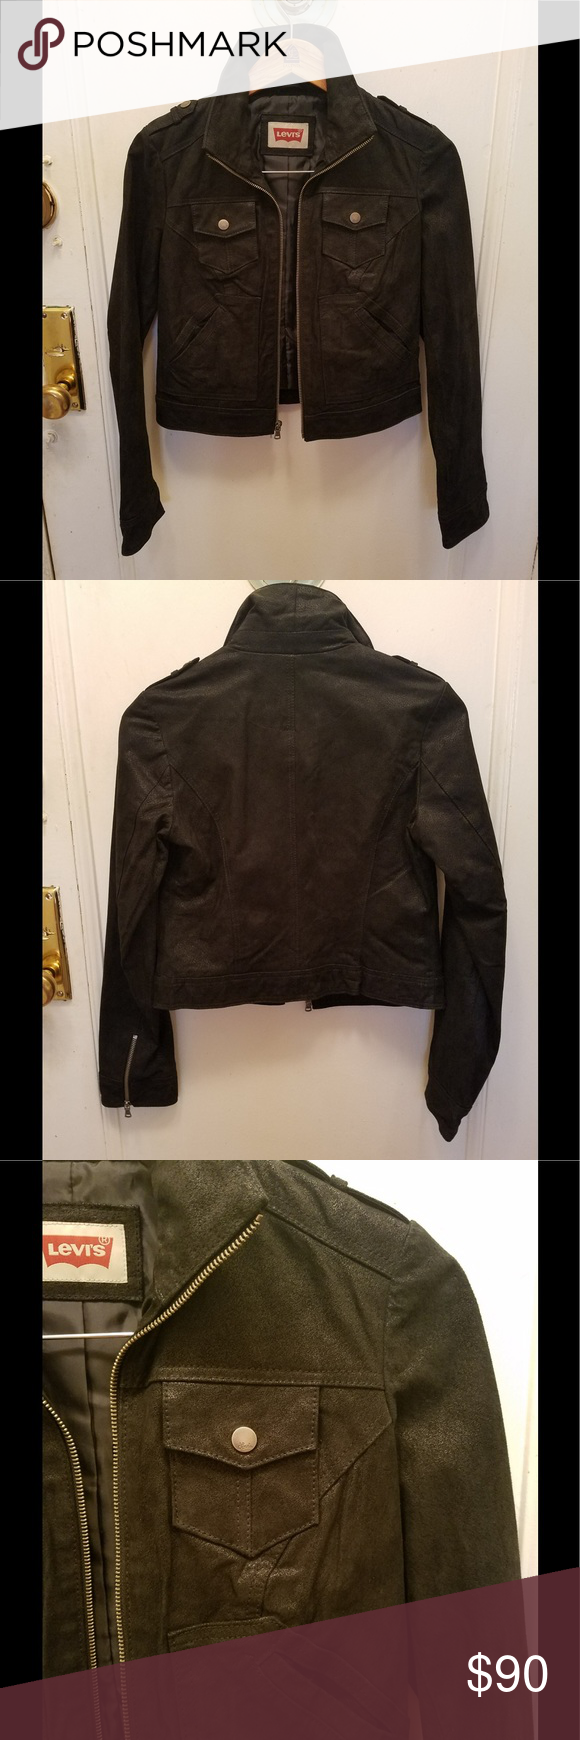 Levis genuine suede leather jacket size small (With images